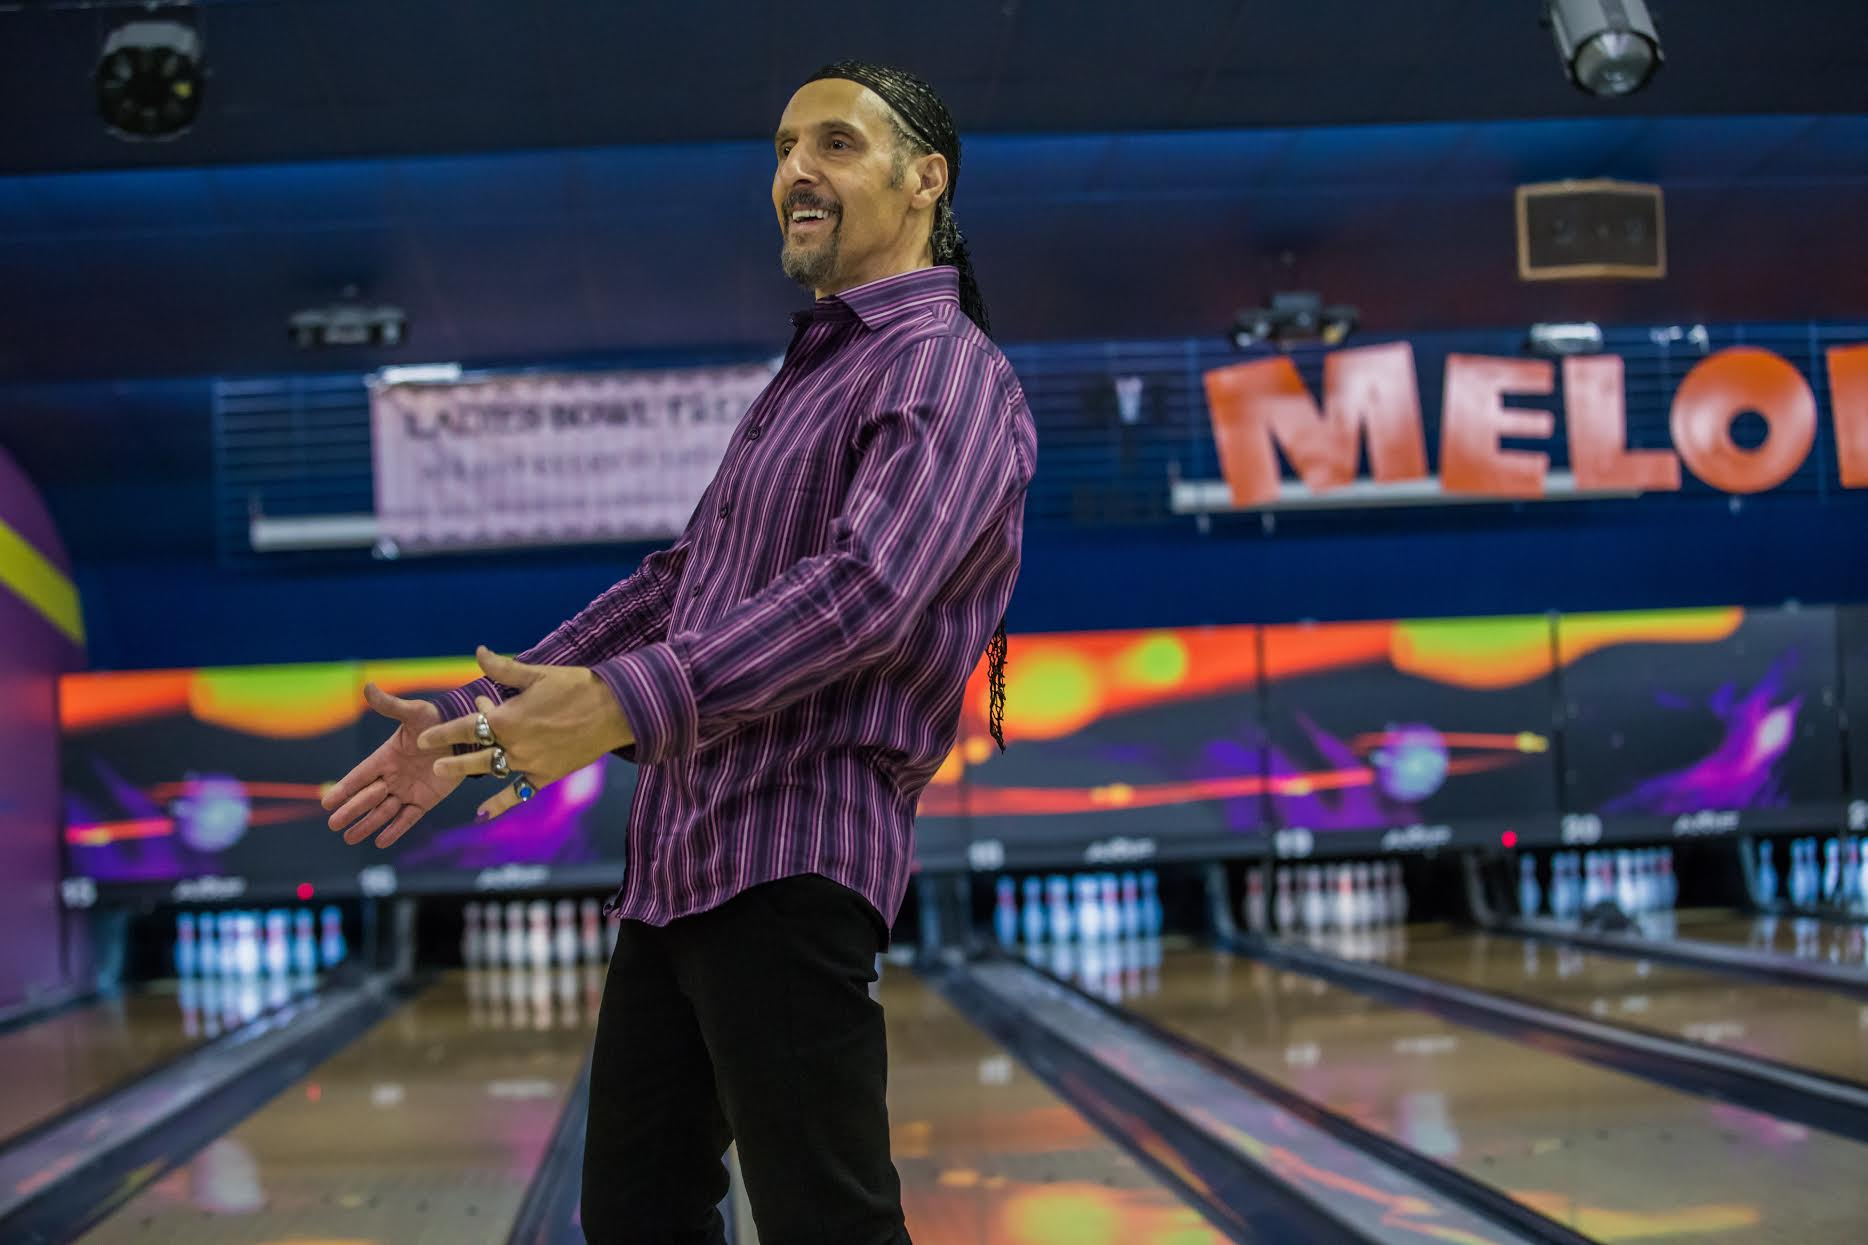 unnamed6 John Turturro shares first look at his Big Lebowski sequel, because nobody fucks with the Jesus